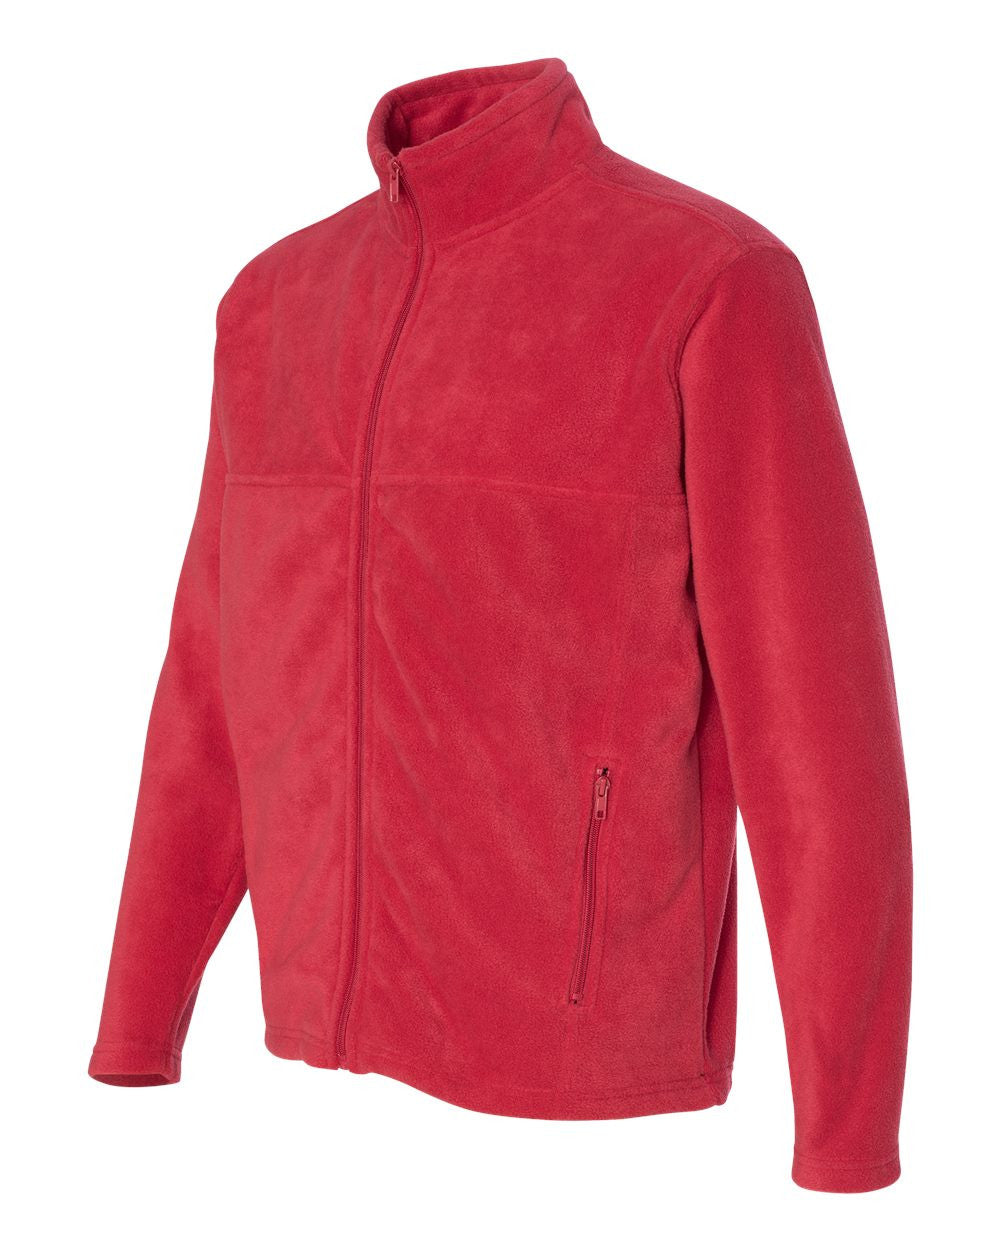 Full Zip Fleece Jacket for Sports